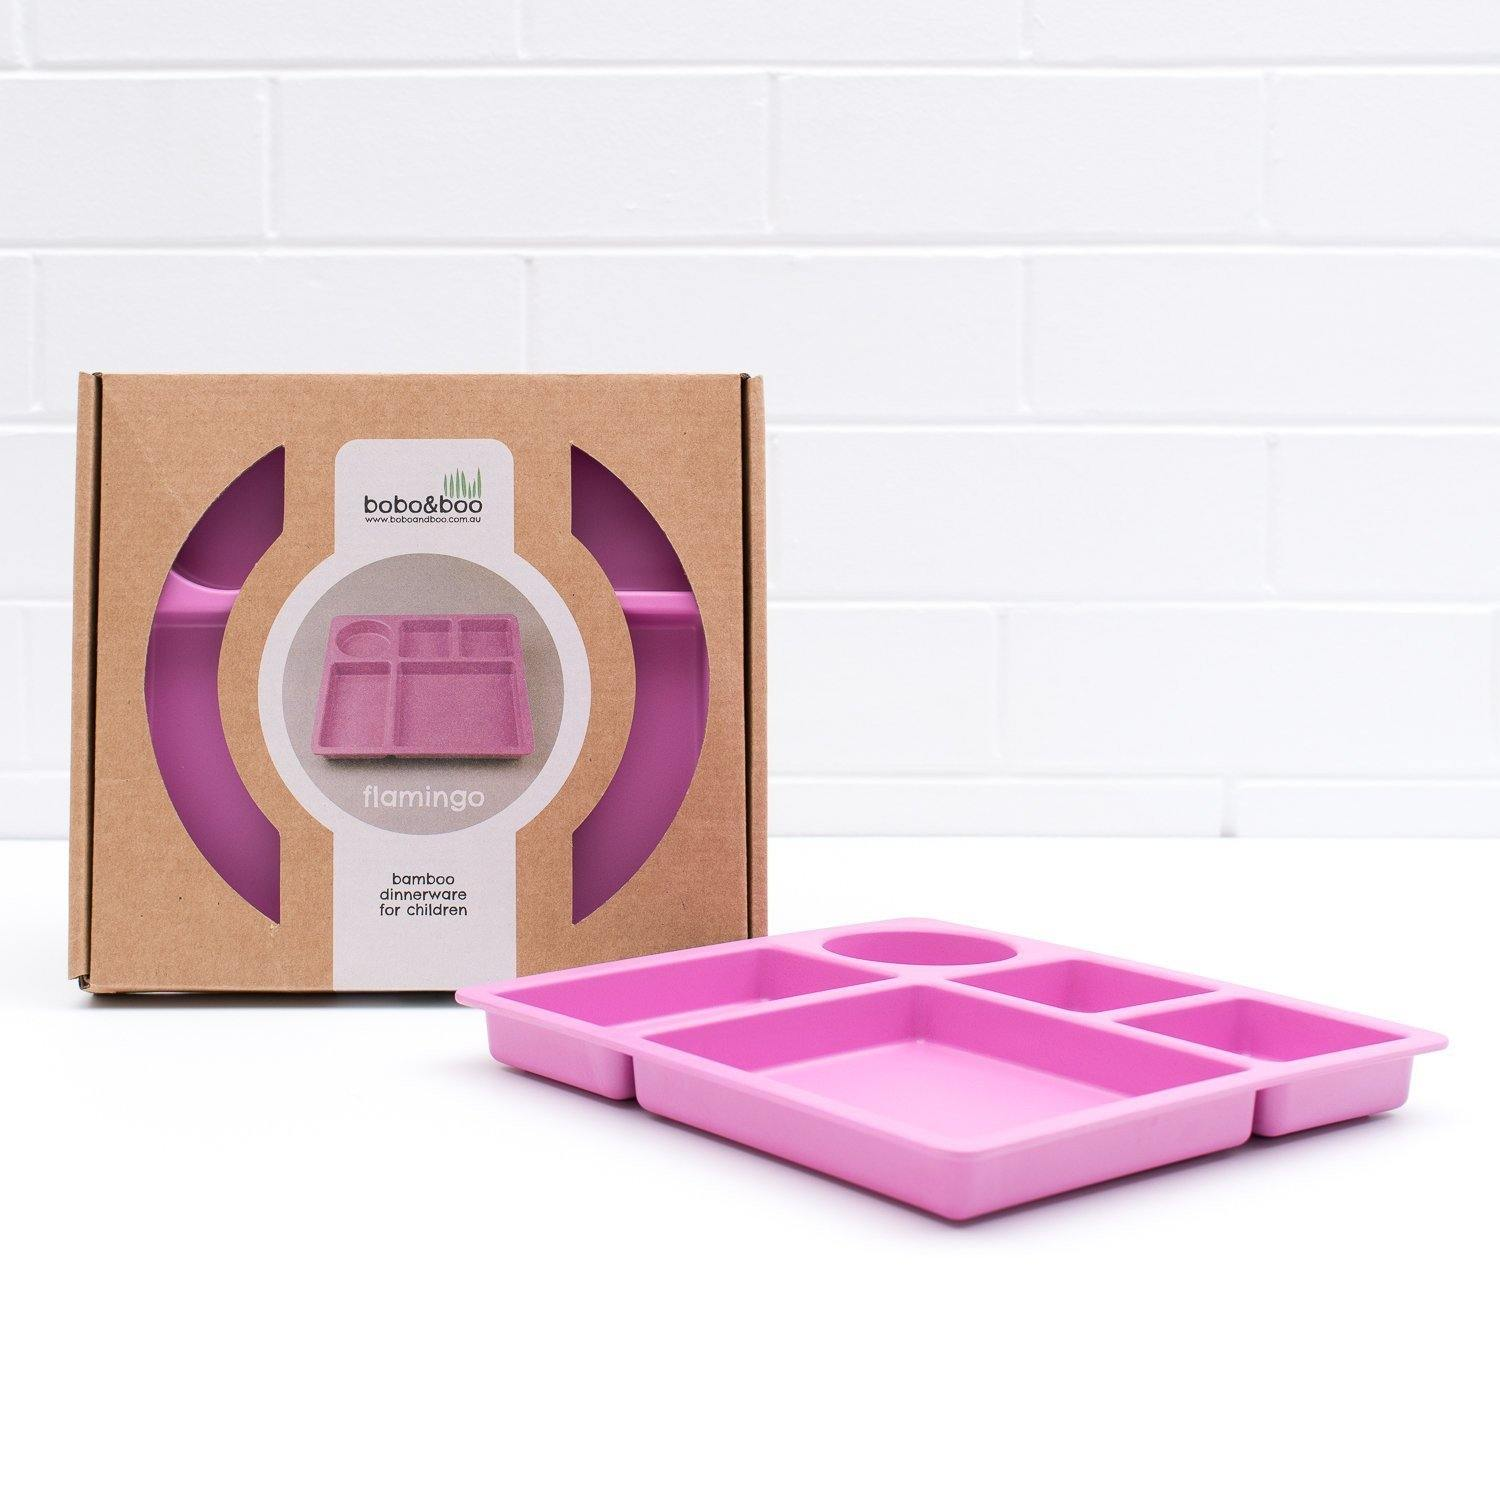 Bobo&boo Non-Toxic, BPA-Free Bamboo Divided Plate for Kids, 5 Portioned Sections - Flamingo Pink - indieprojectstore